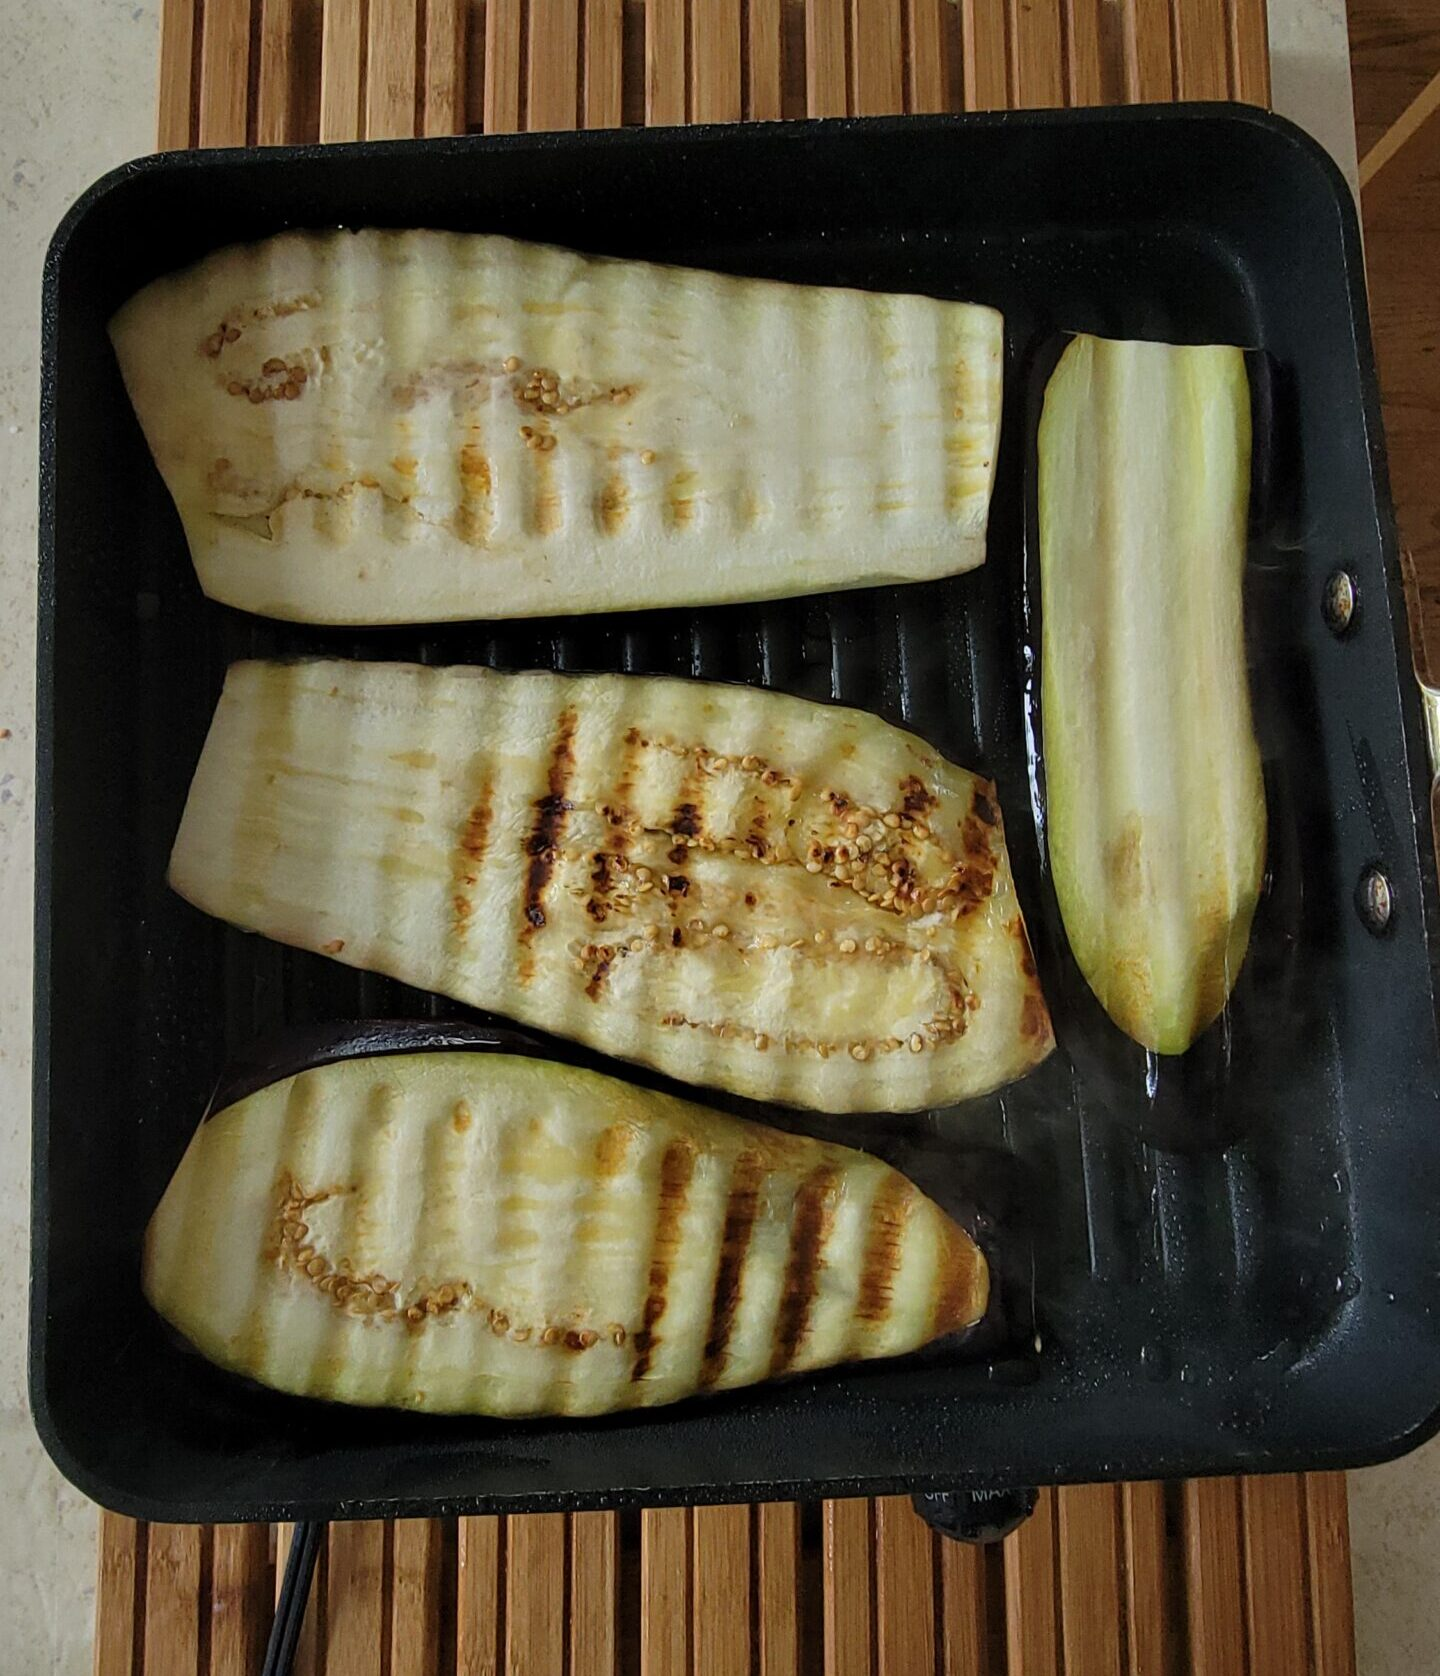 Grilling eggplant on my All Clad Grill pan